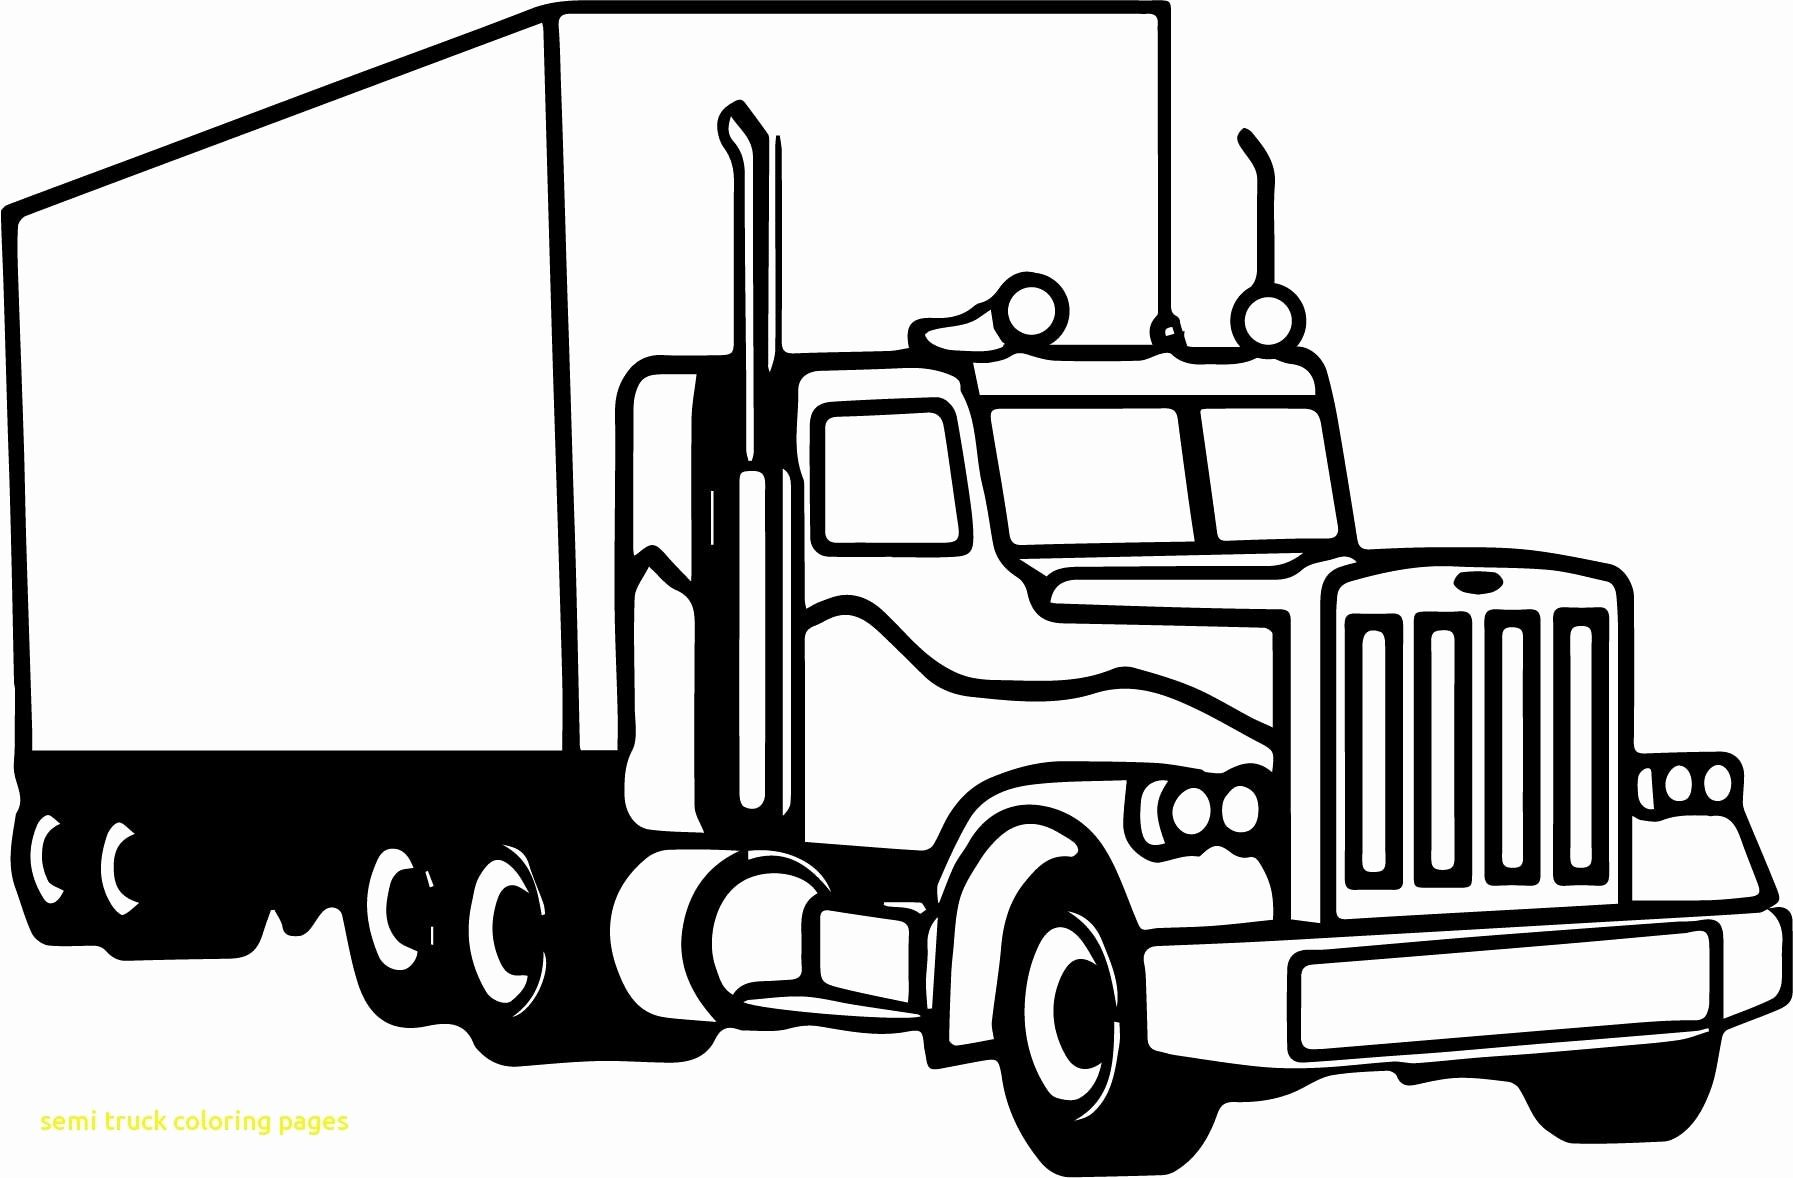 Semi Truck Coloring Sheets Free Printable Coloring Truck Coloring Pages Cars Coloring Pages Coloring Pages